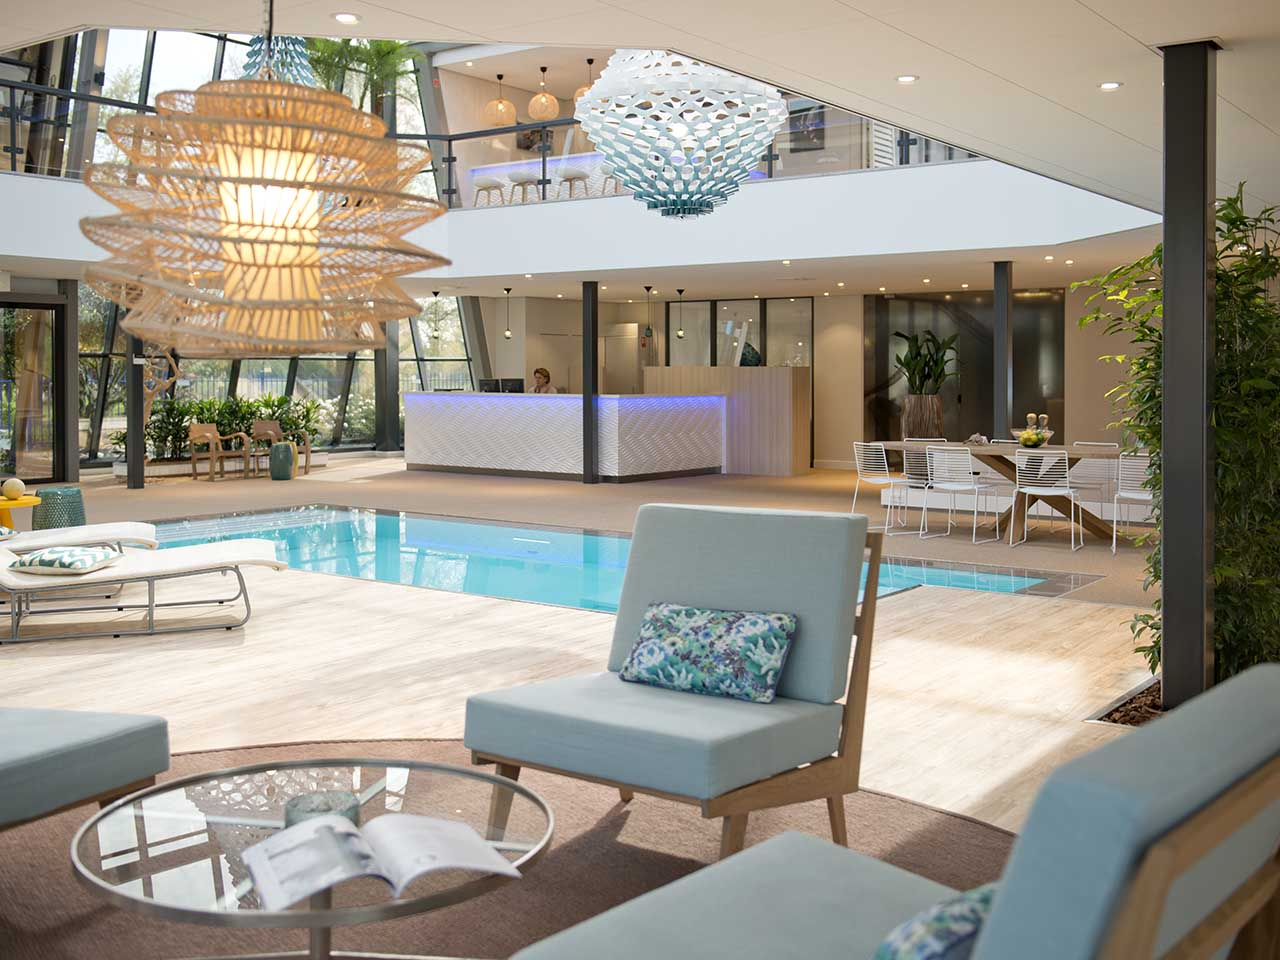 Pool And Lifestyle Impressie